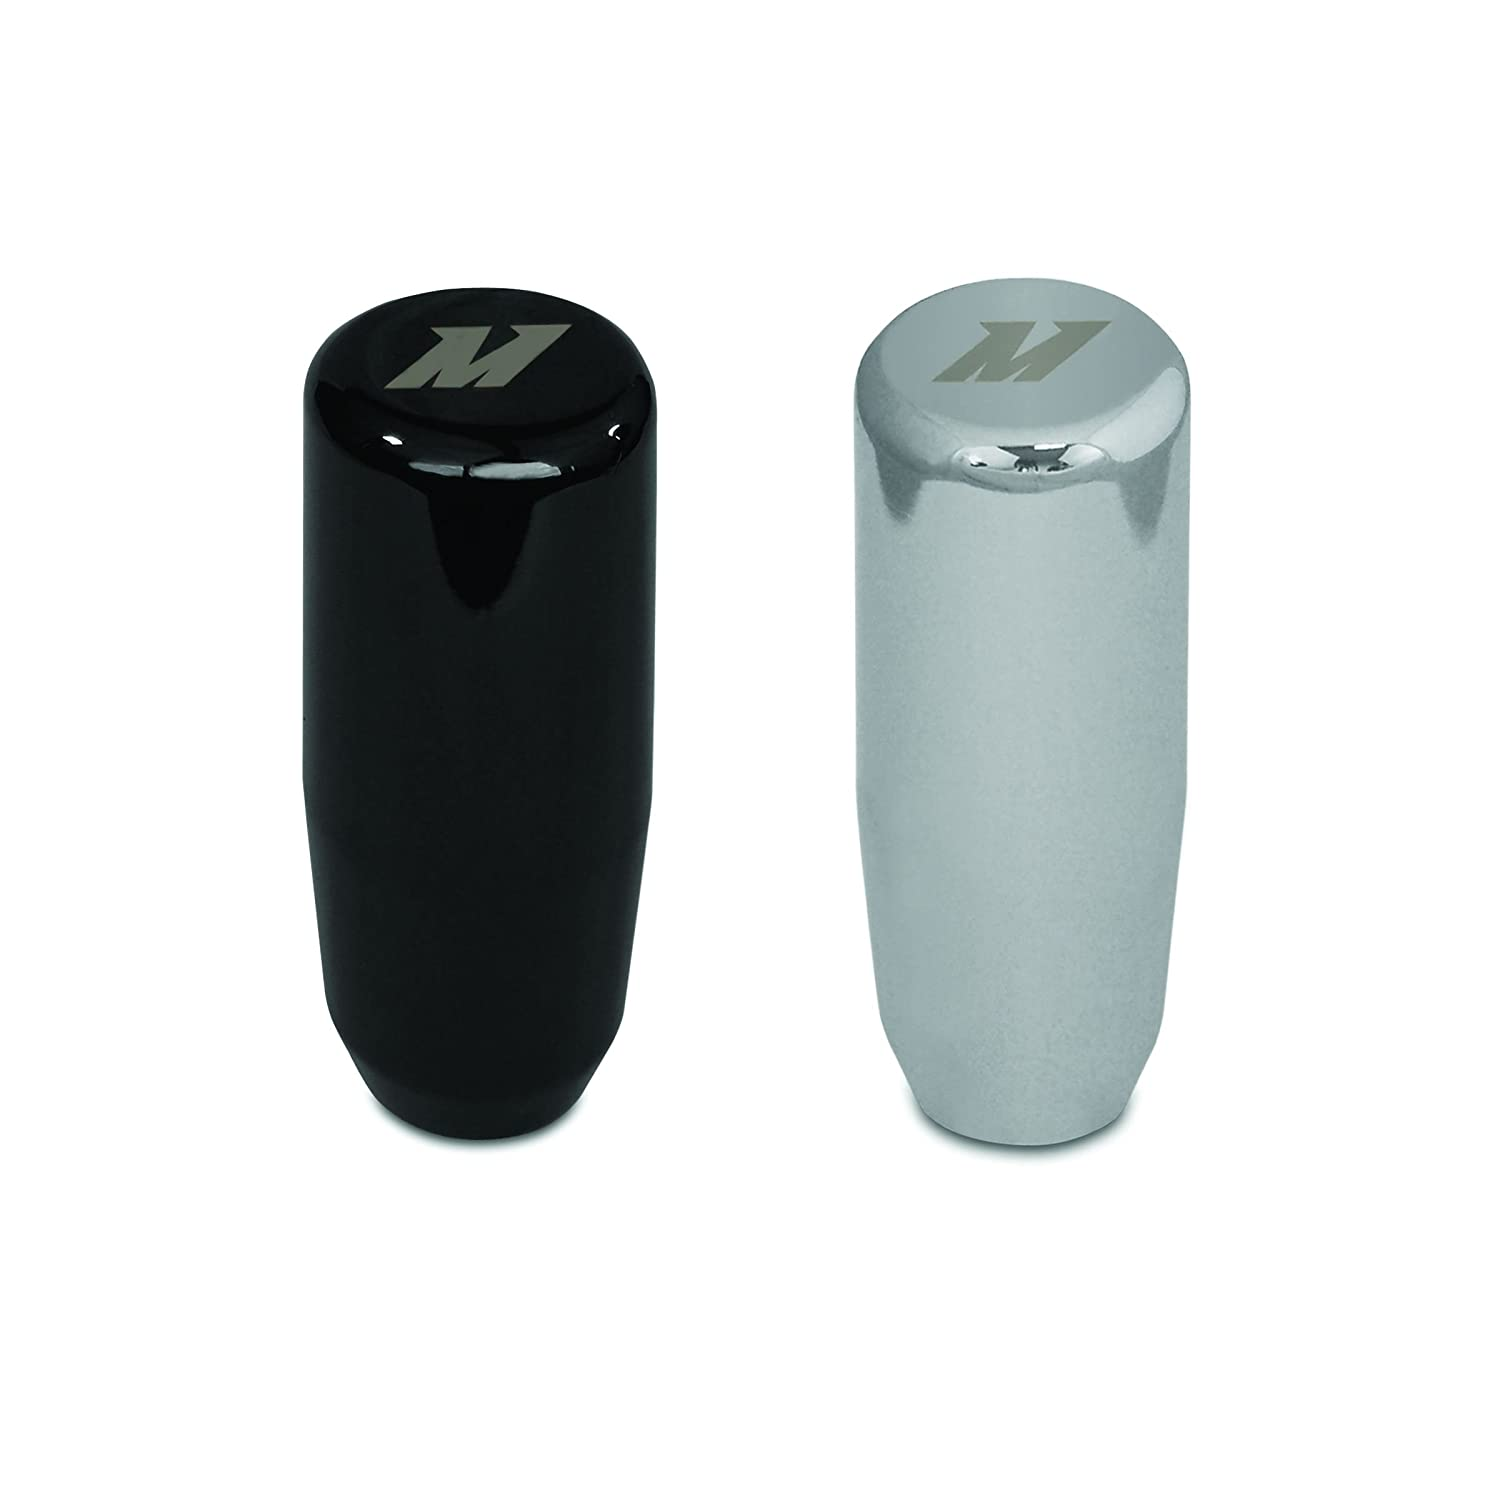 Mishimoto MMSK-BK Black Weighted Shift Knob